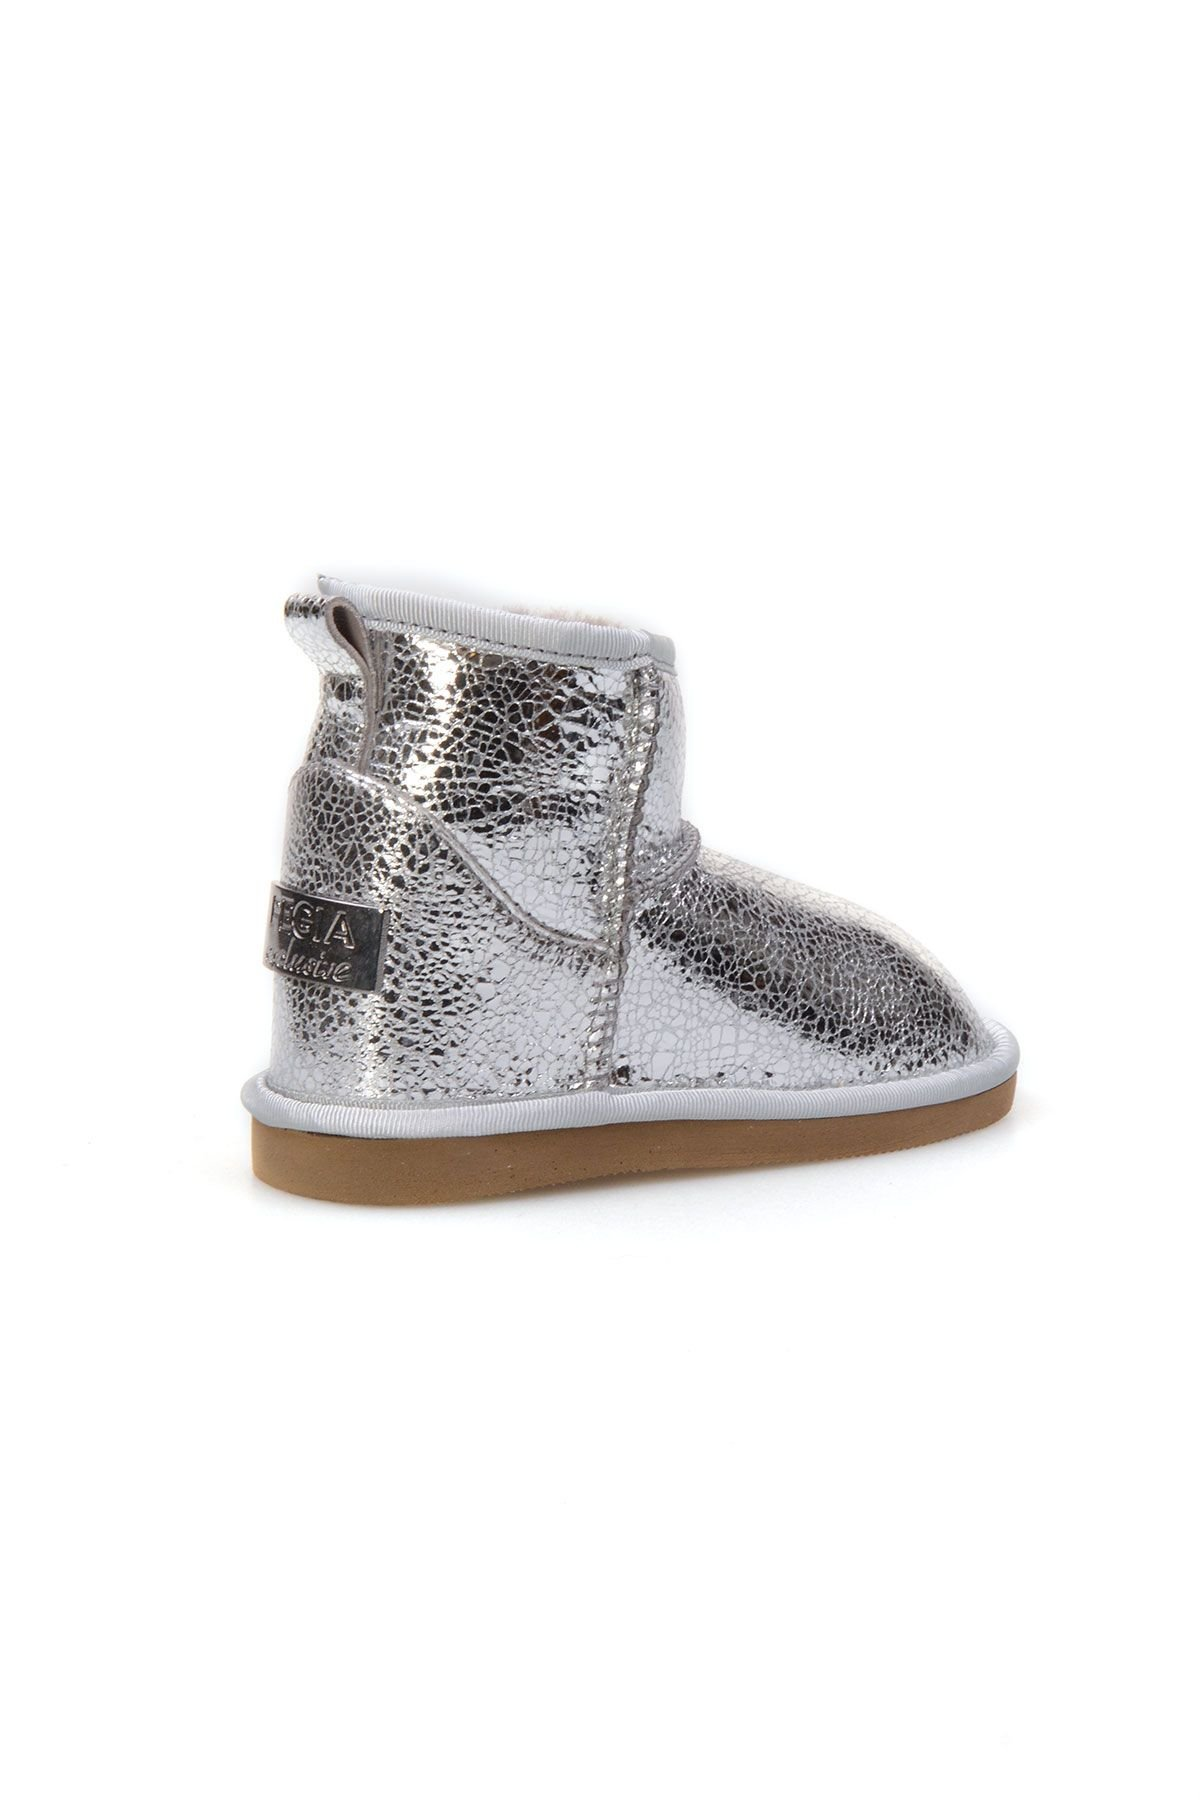 Pegia Genuine Shearling Kids' Boots With Pattern 181017 Silver